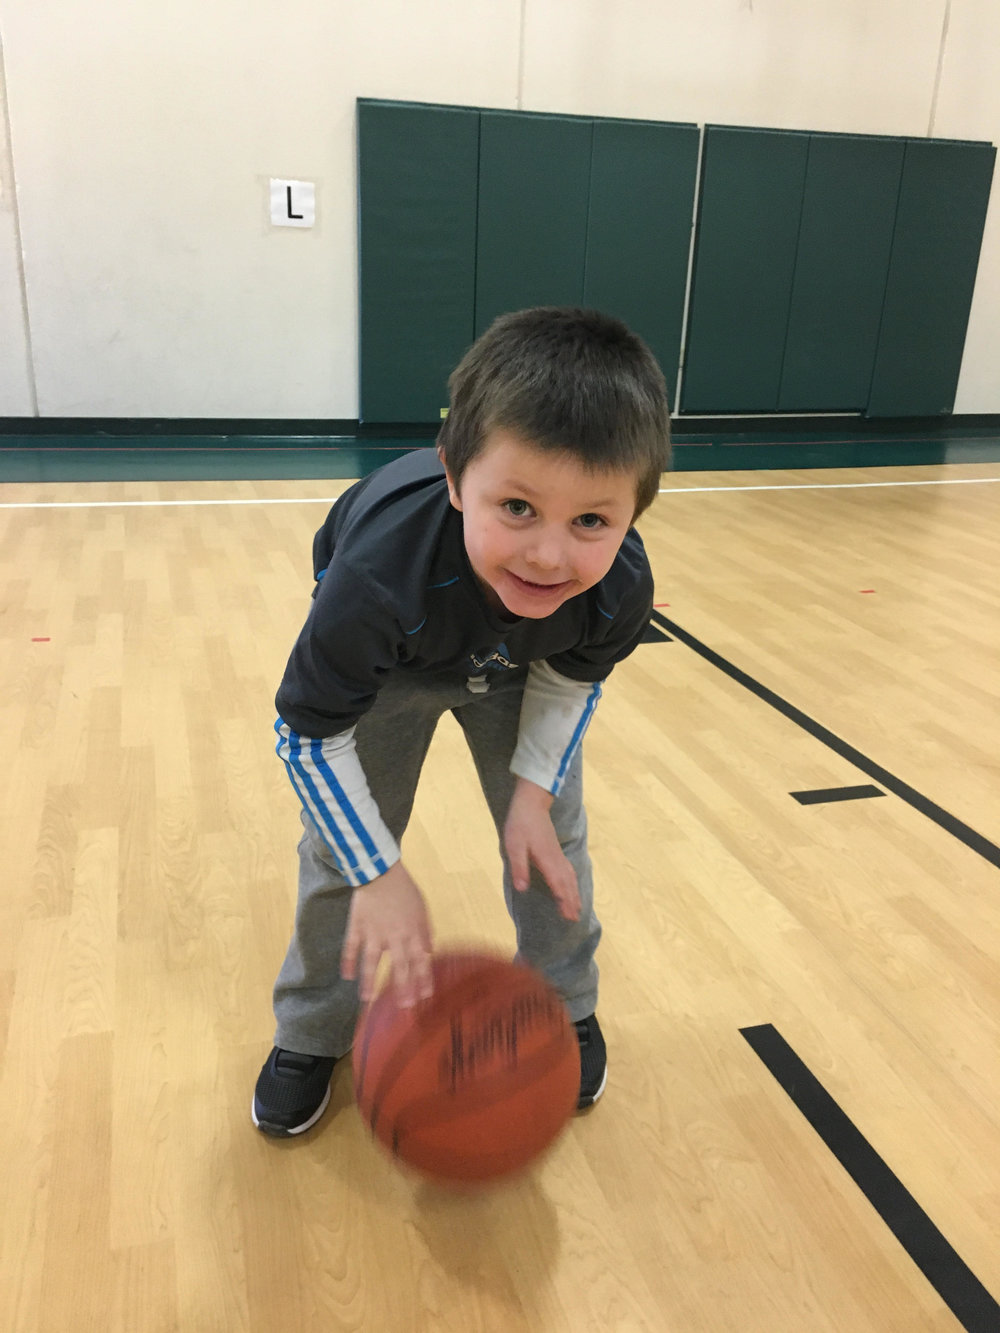 practicing dribbling in gym class